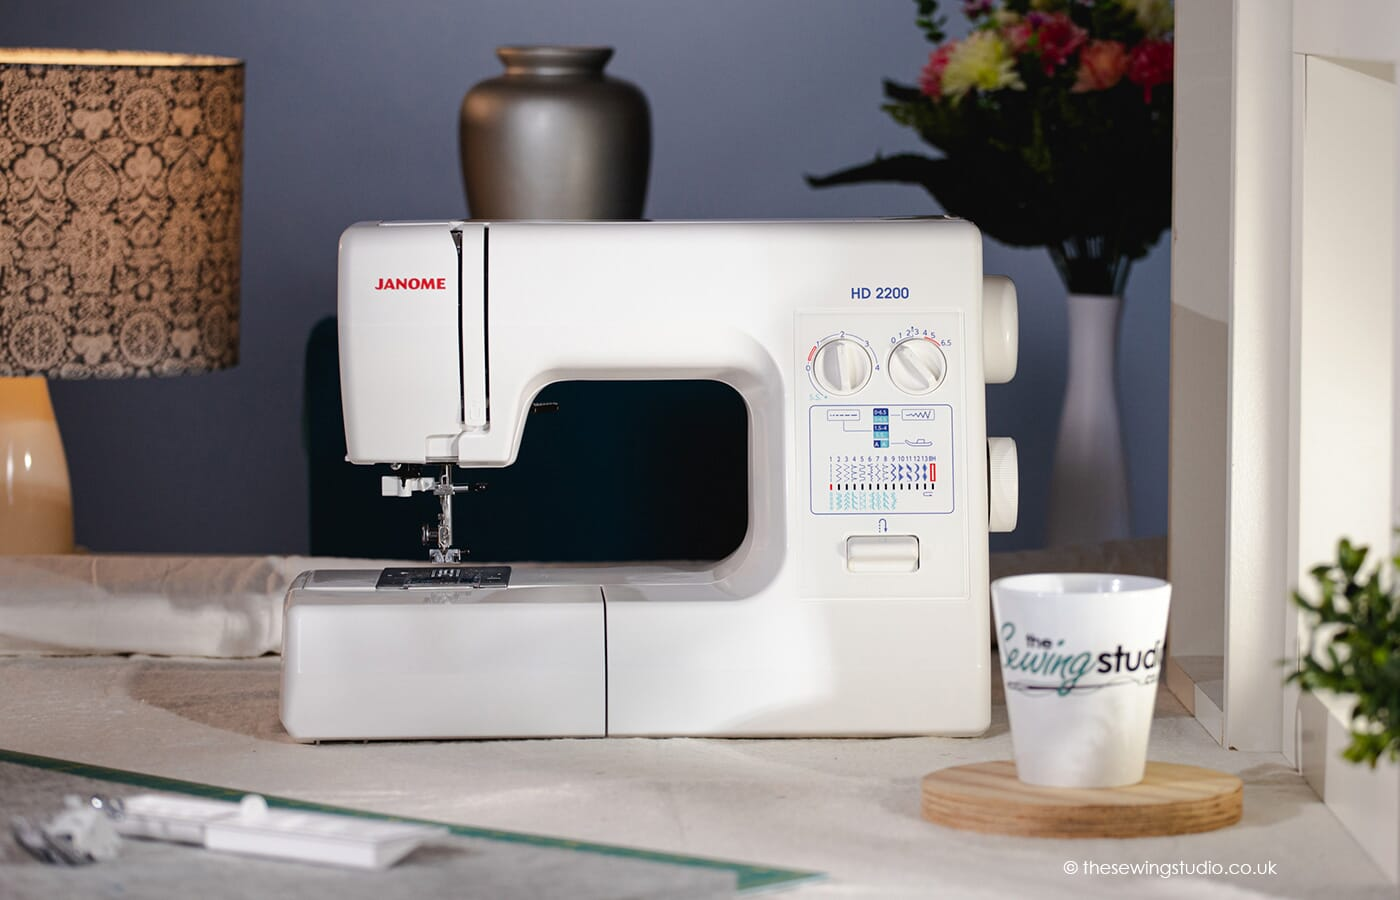 Janome HD2200 Sewing Machine in a Sewing Room